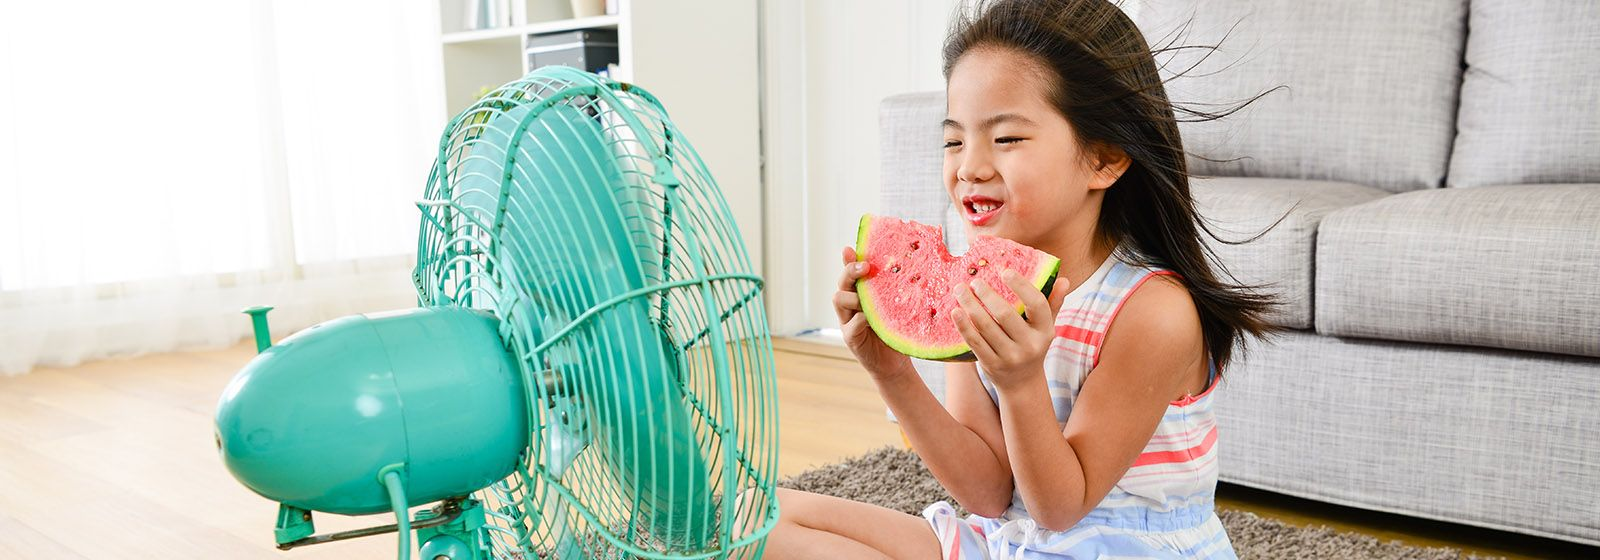 10 ways to save energy during hot weather